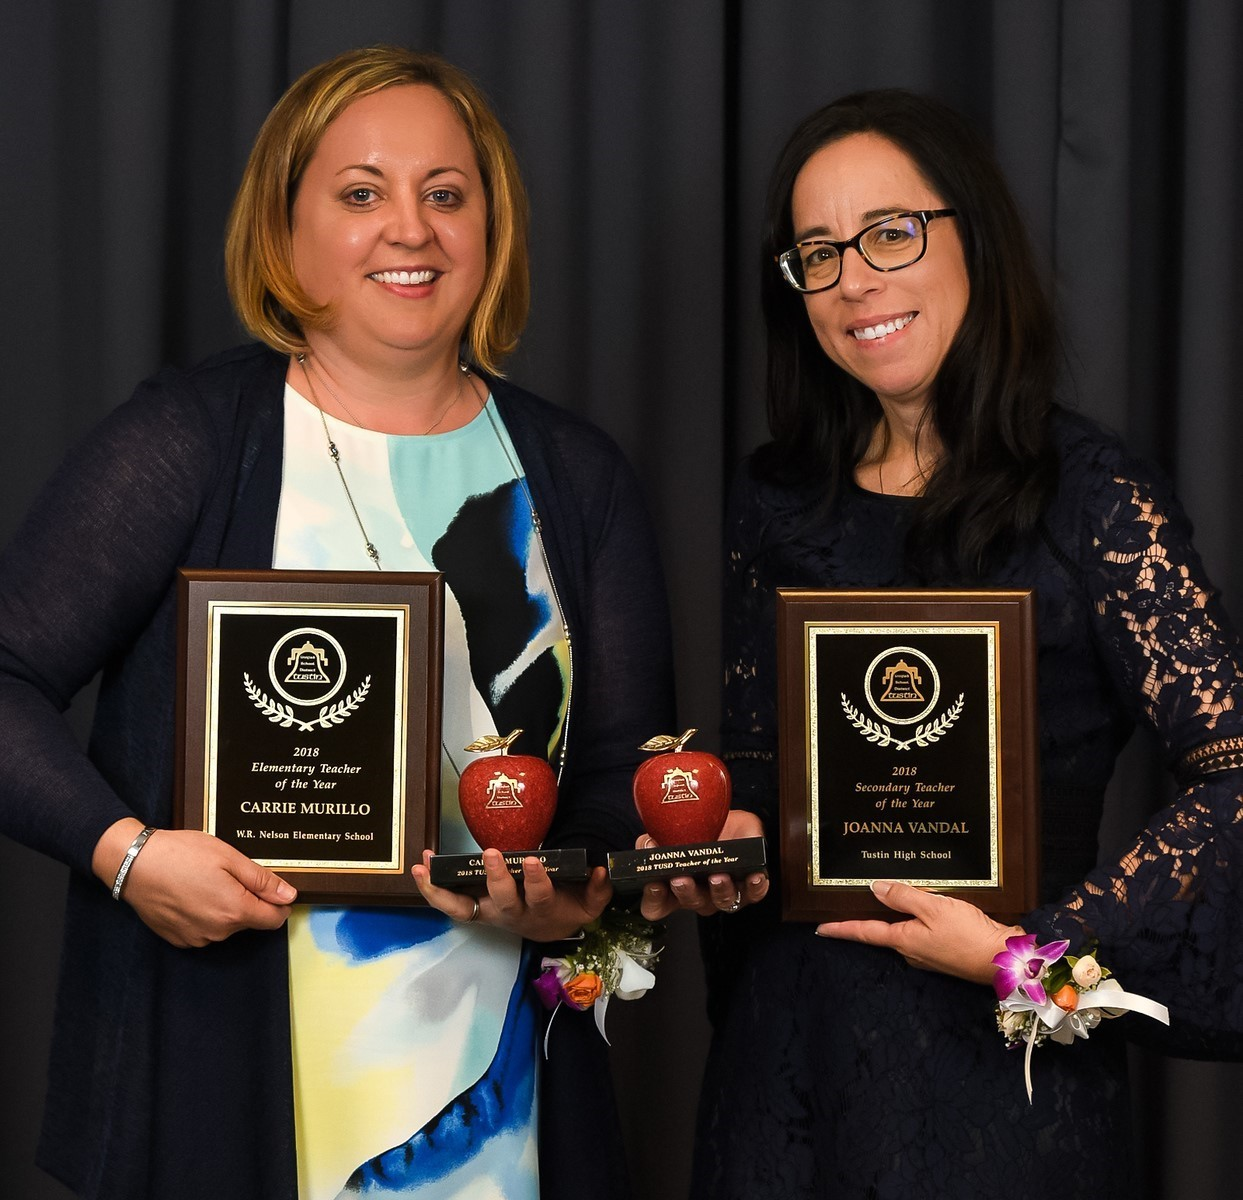 Teachers of the Year Carrie Murillo & Joanna Vandal